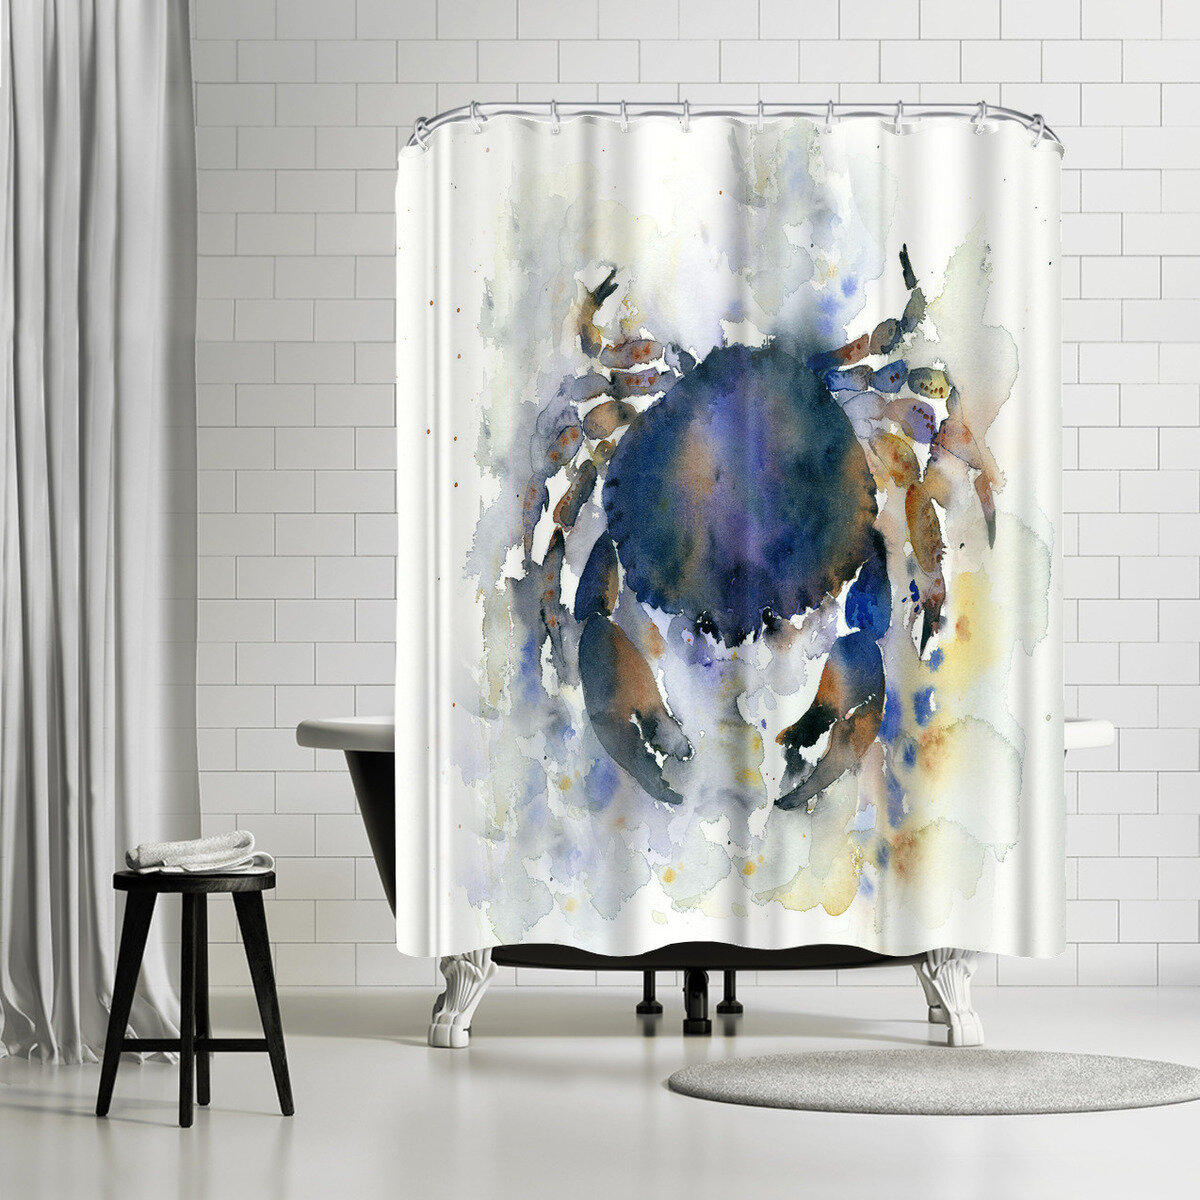 East Urban Home Rachel McNaughton Crab Shower Curtain